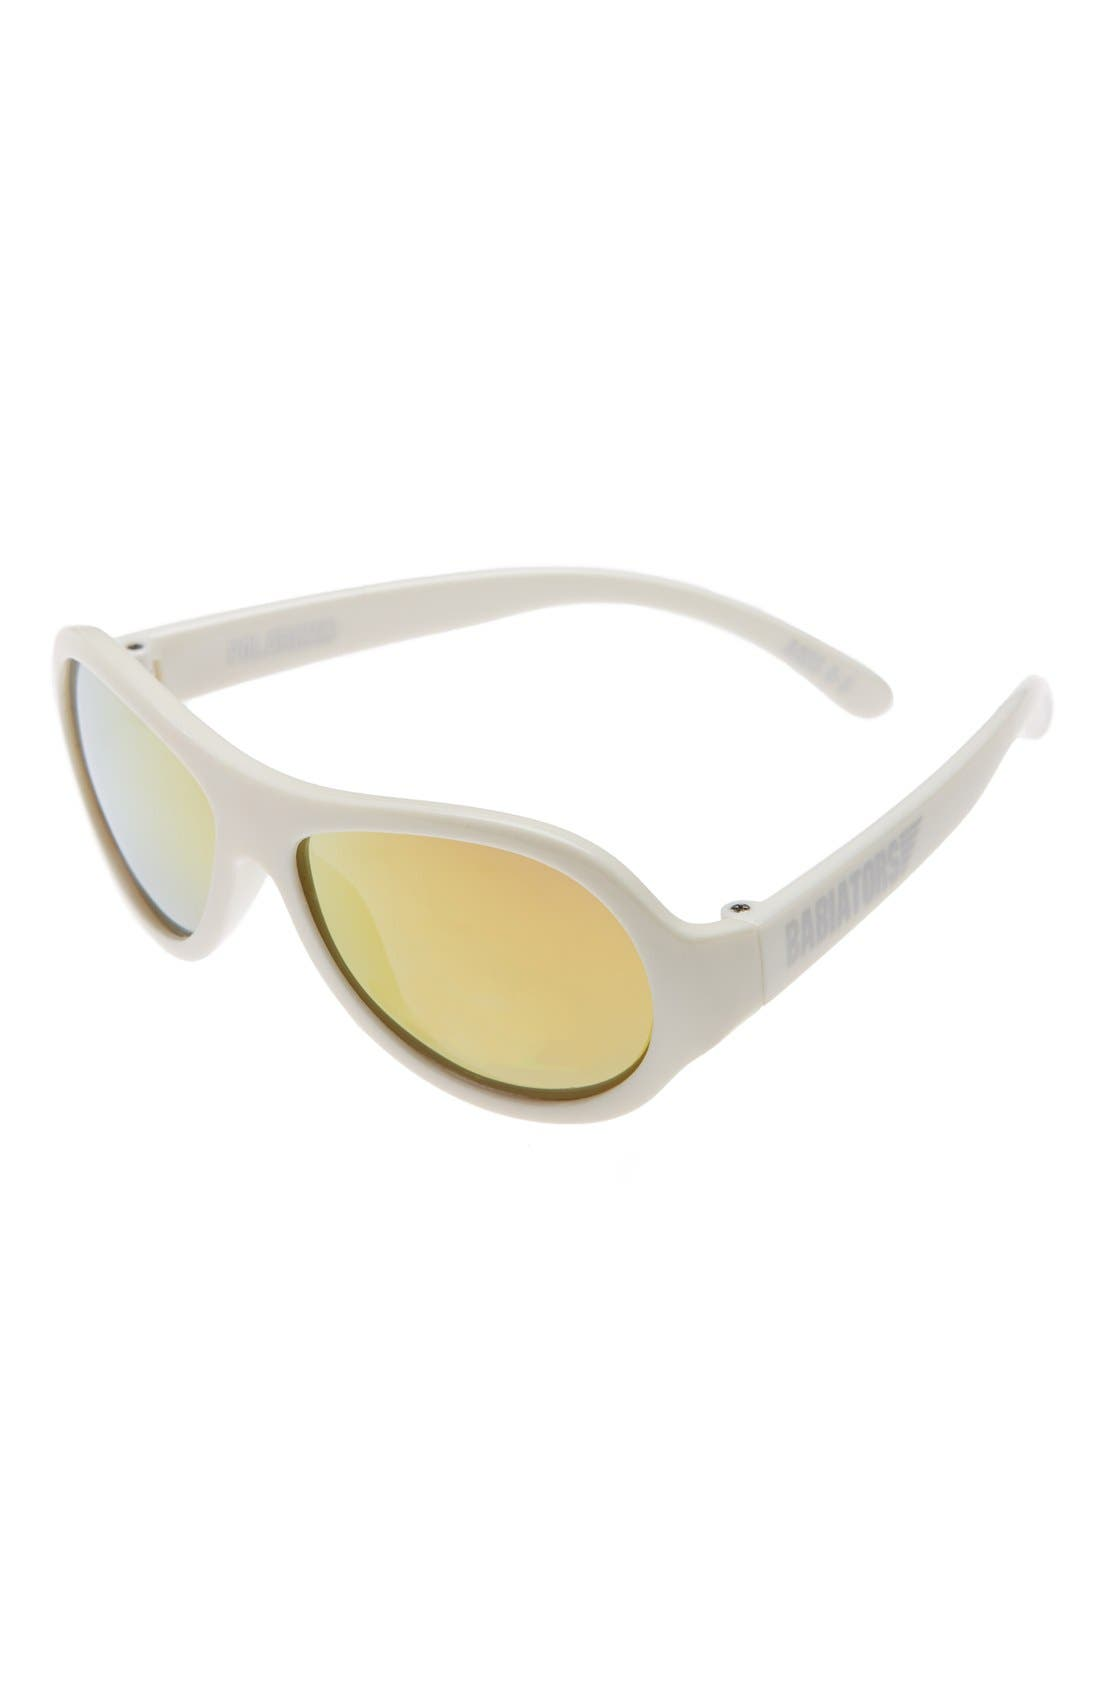 BABIATORS Junior Babiators Polarized Sunglasses